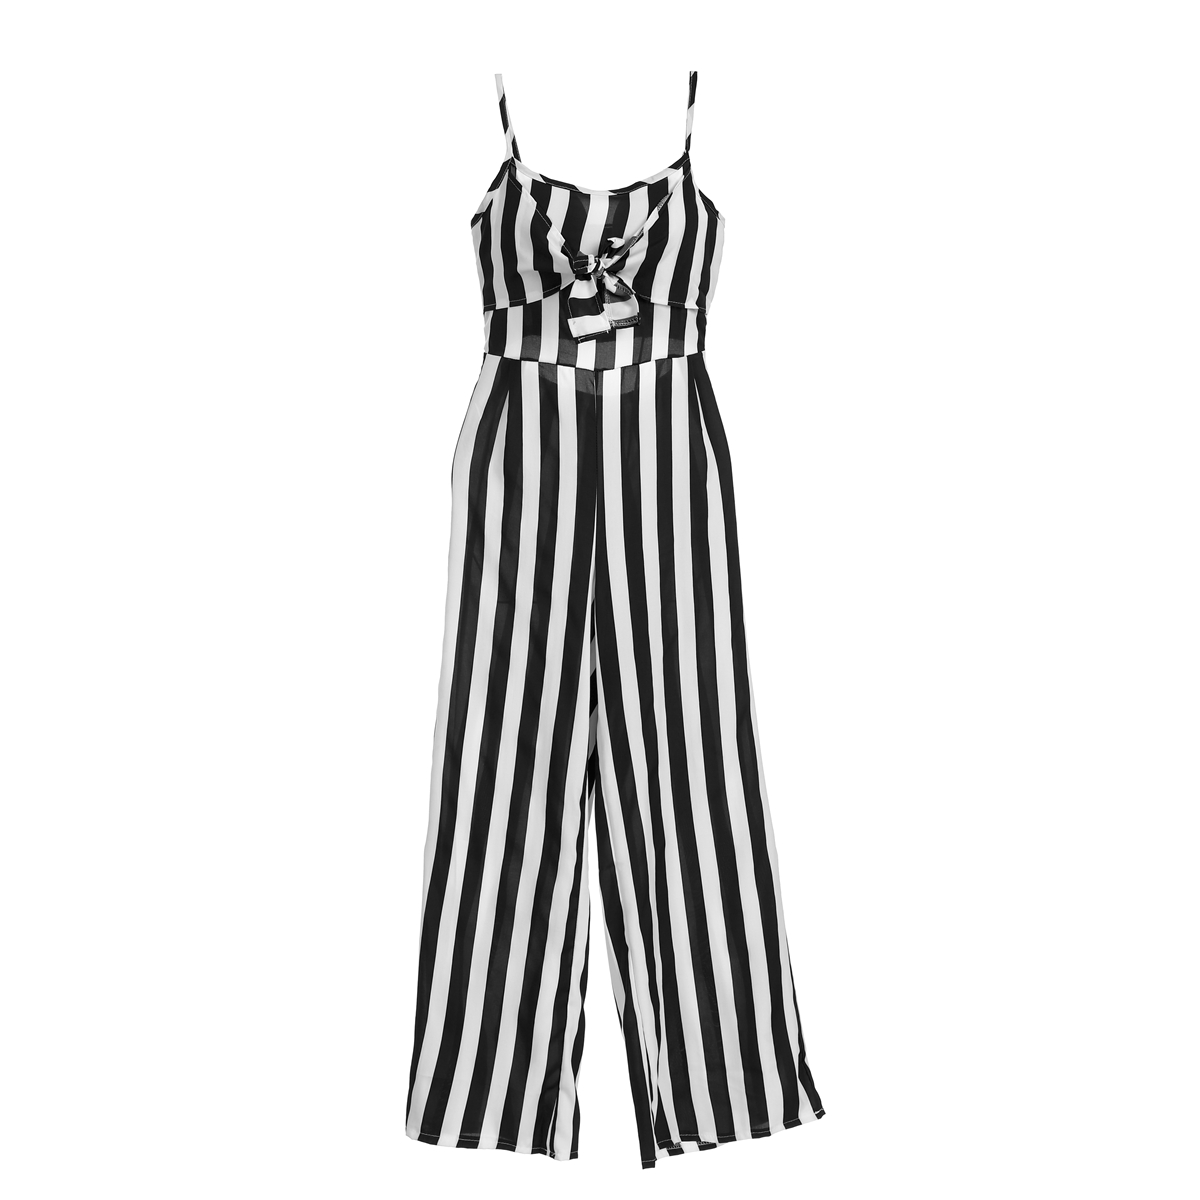 2019 Newest Hot Sexy Women Strap Stripe Romper Jumpsuit Bodysuit Party Clubwear Casual Outfit Wholesale Dropshipping